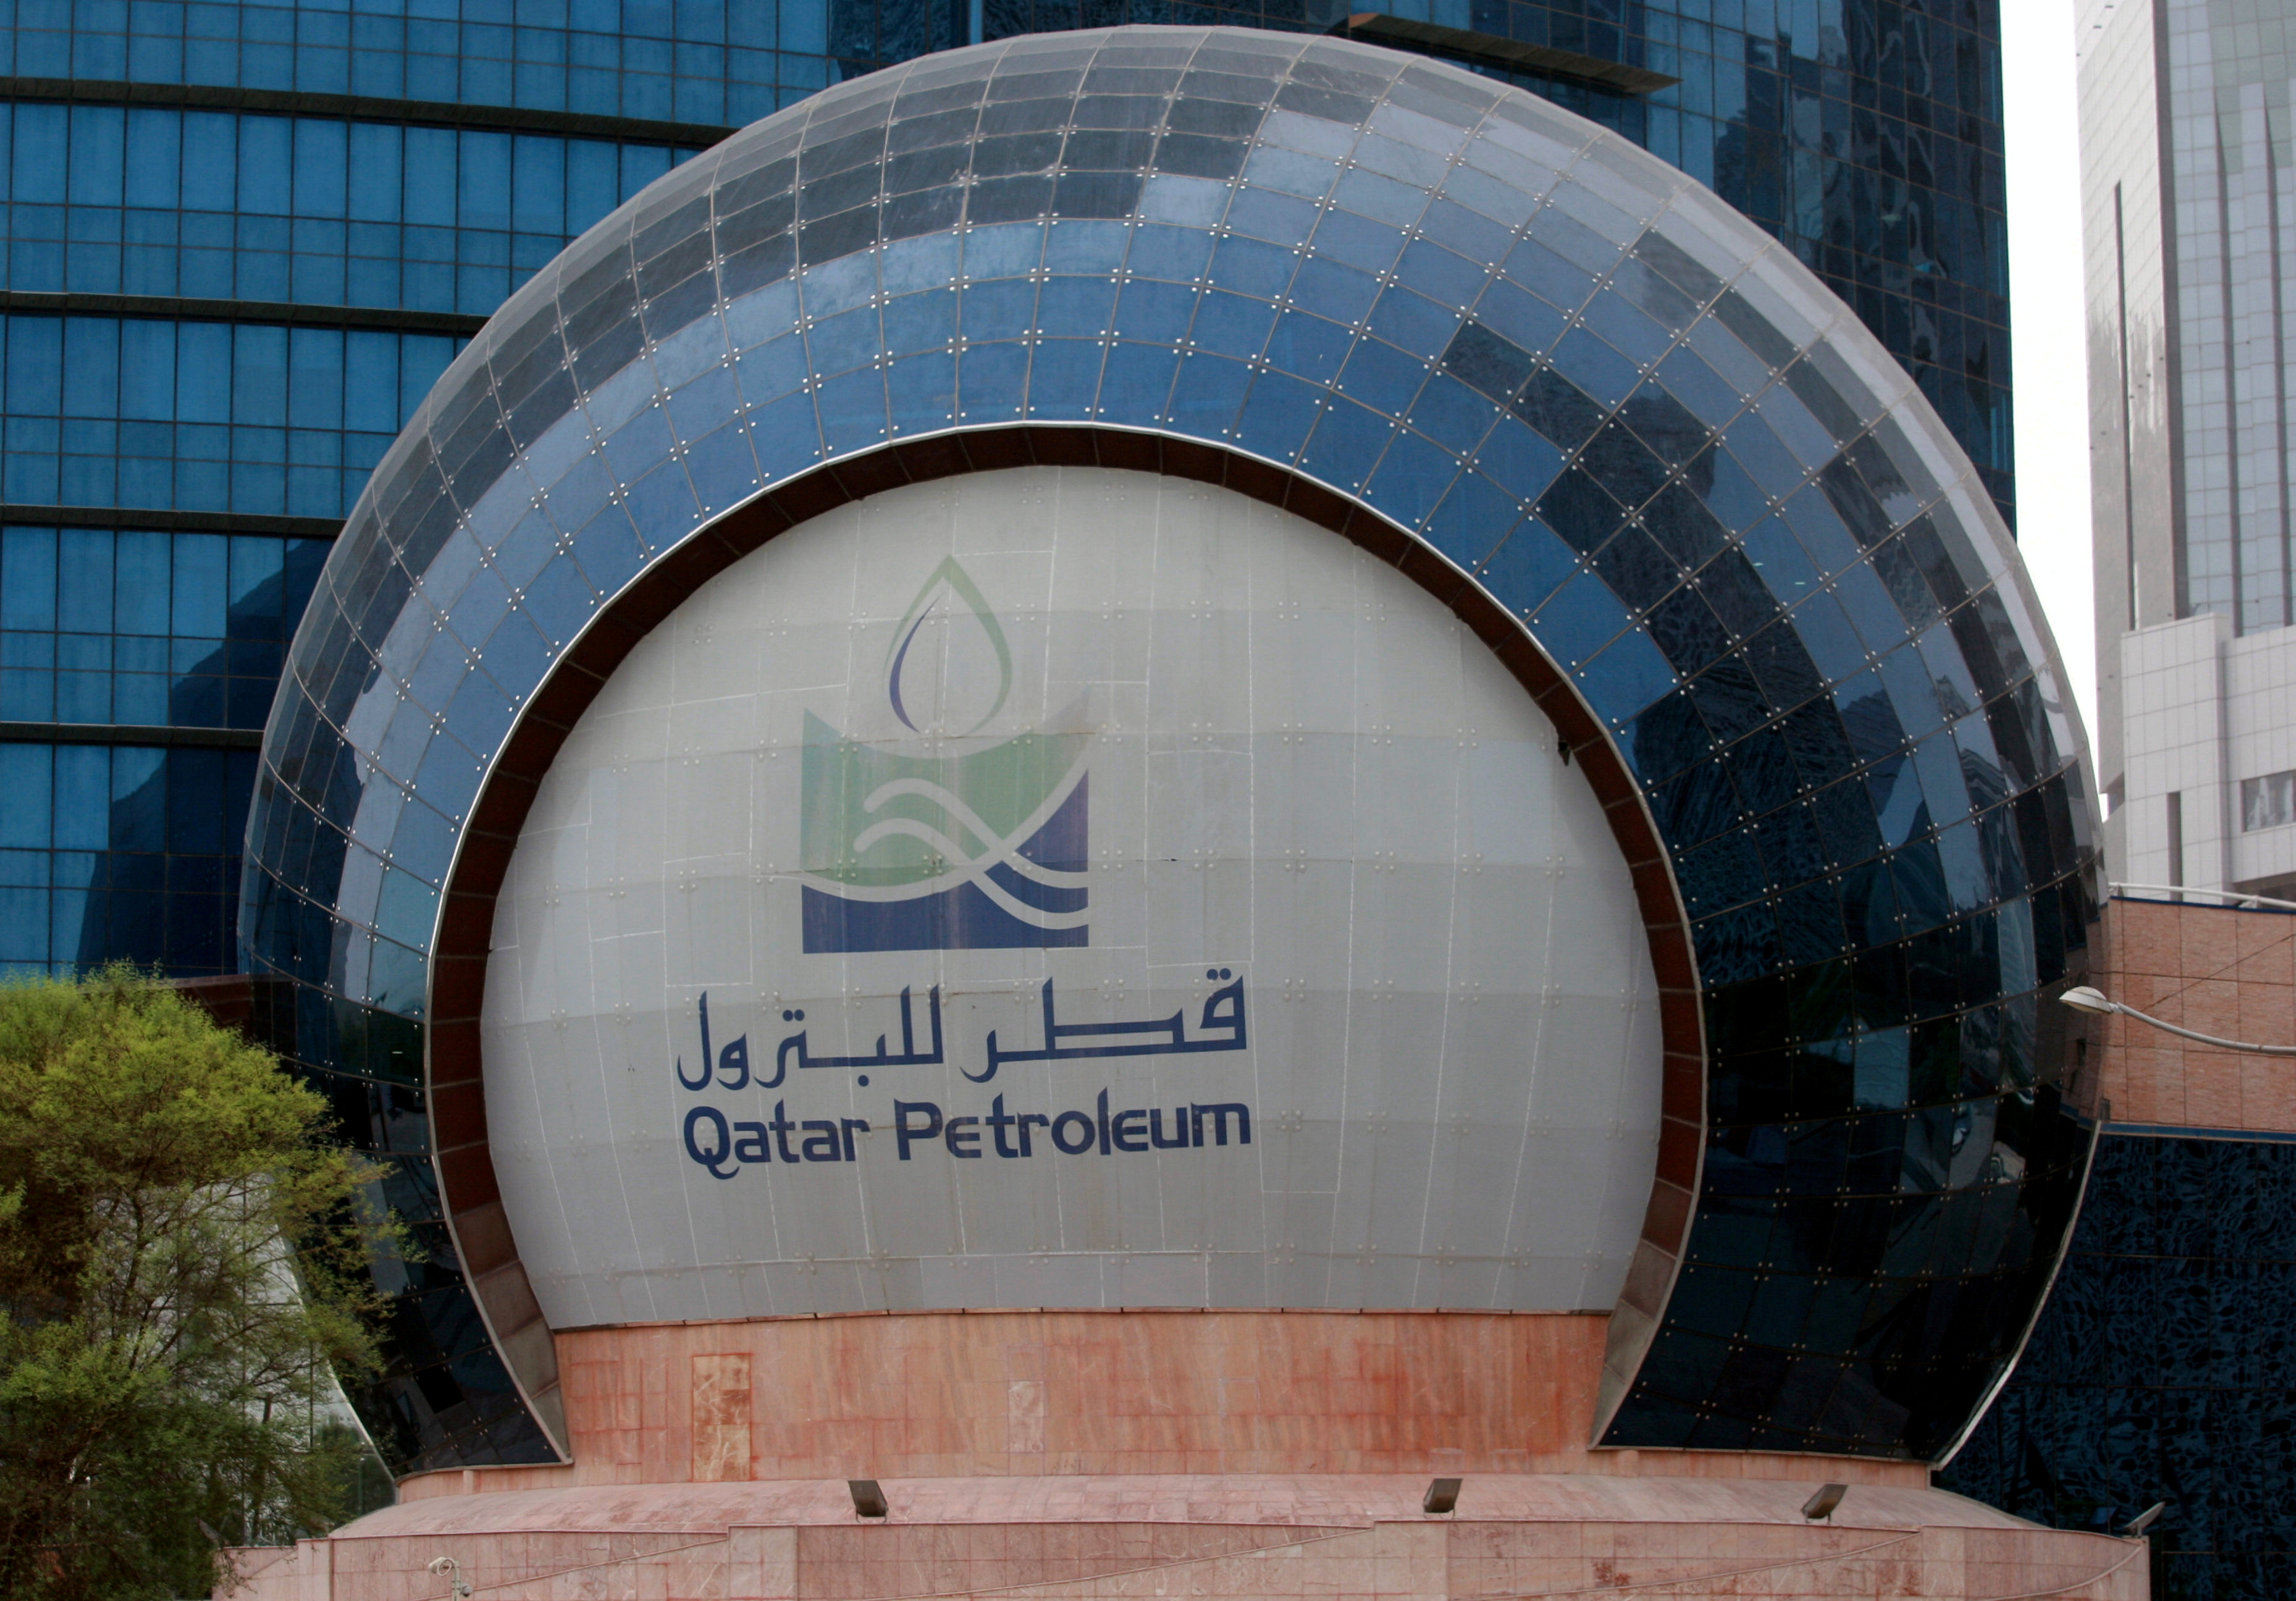 The logo of Qatar Petroleum is seen at its headquartes in Doha, Qatar, July 8, 2017. REUTERS/Stringer/File Photo